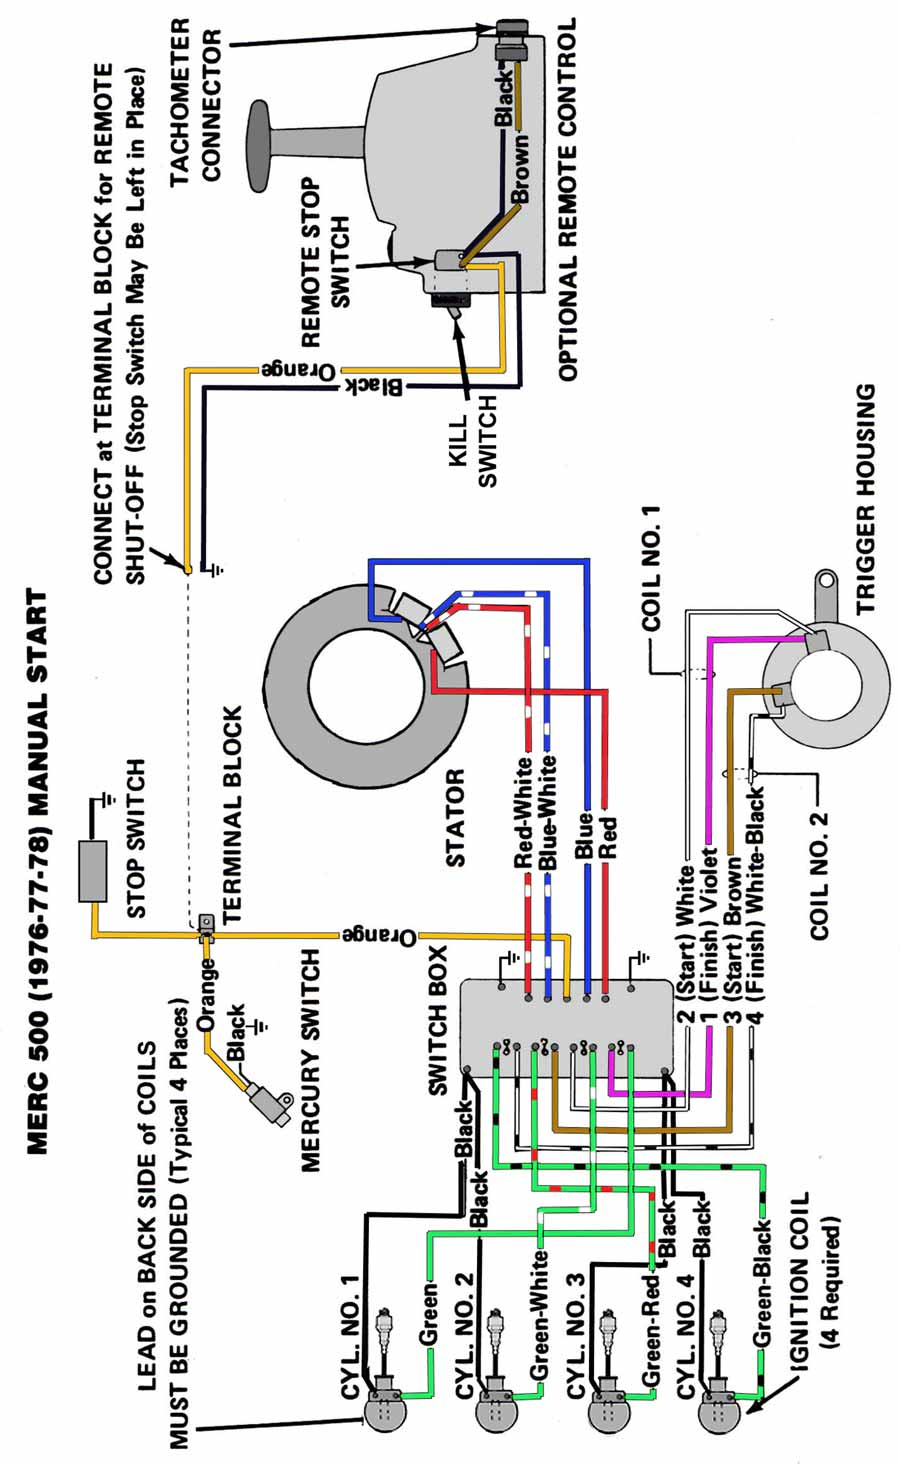 mercury outboard wiring diagrams mastertech marinWiring Diagram Together With 85 Hp Mercury Outboard Wiring Diagram #4